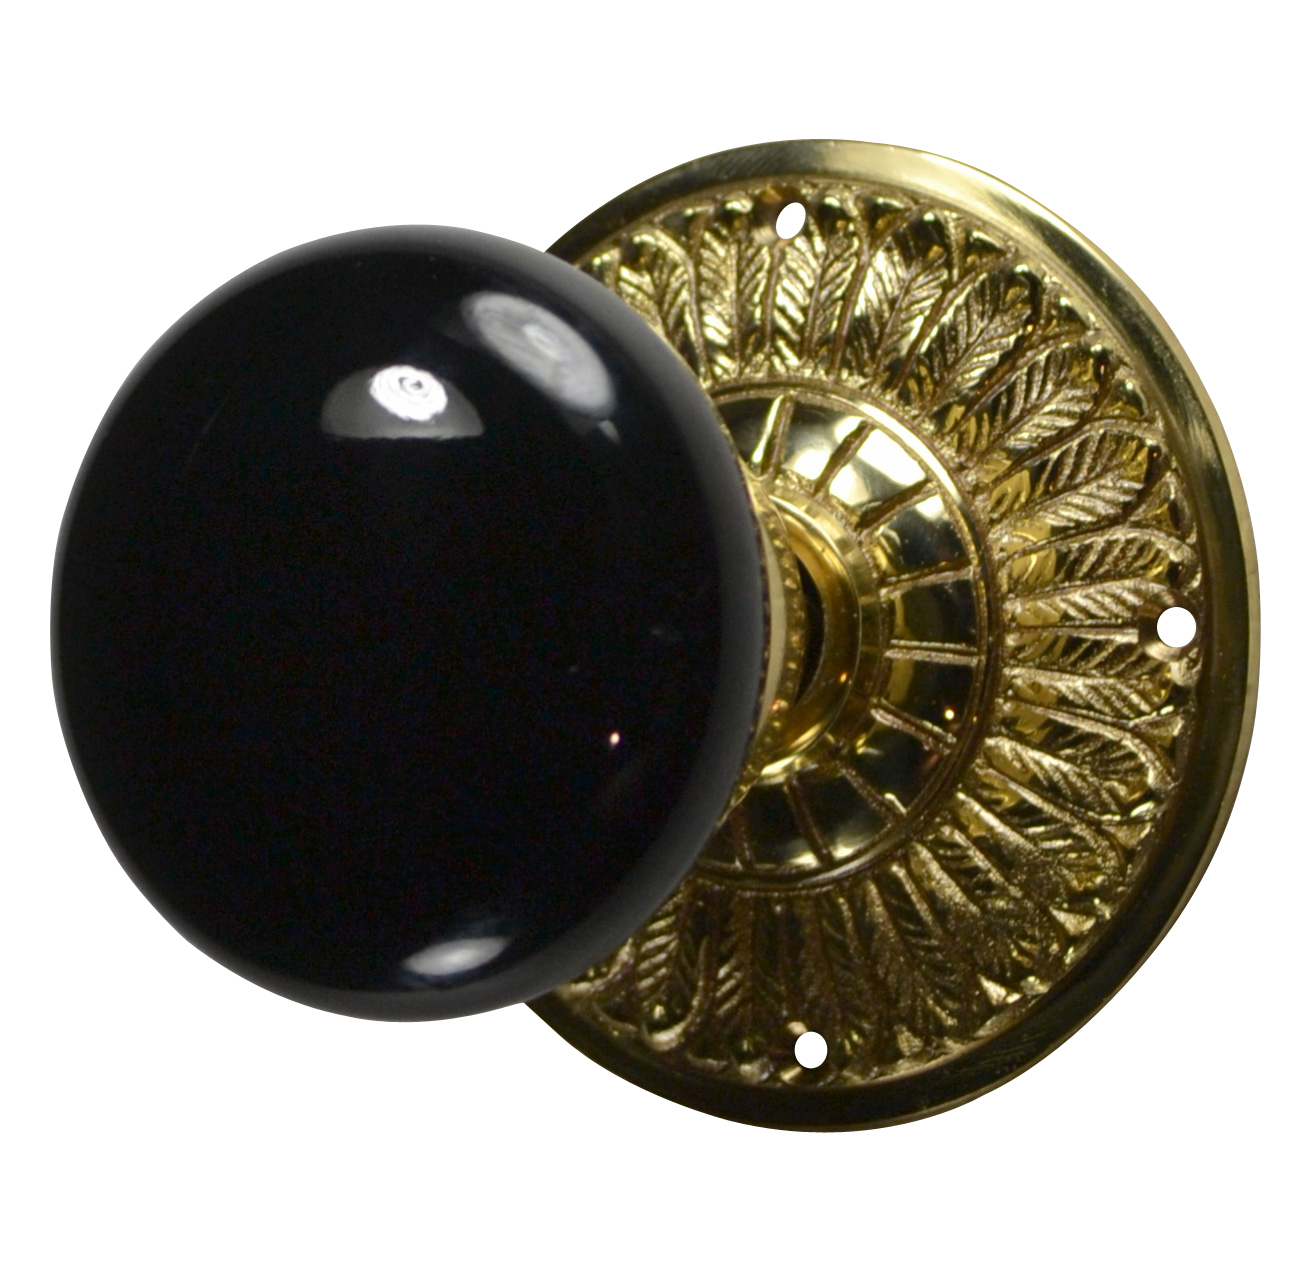 Feathers Black Porcelain Door Knob (Polished Brass Finish)